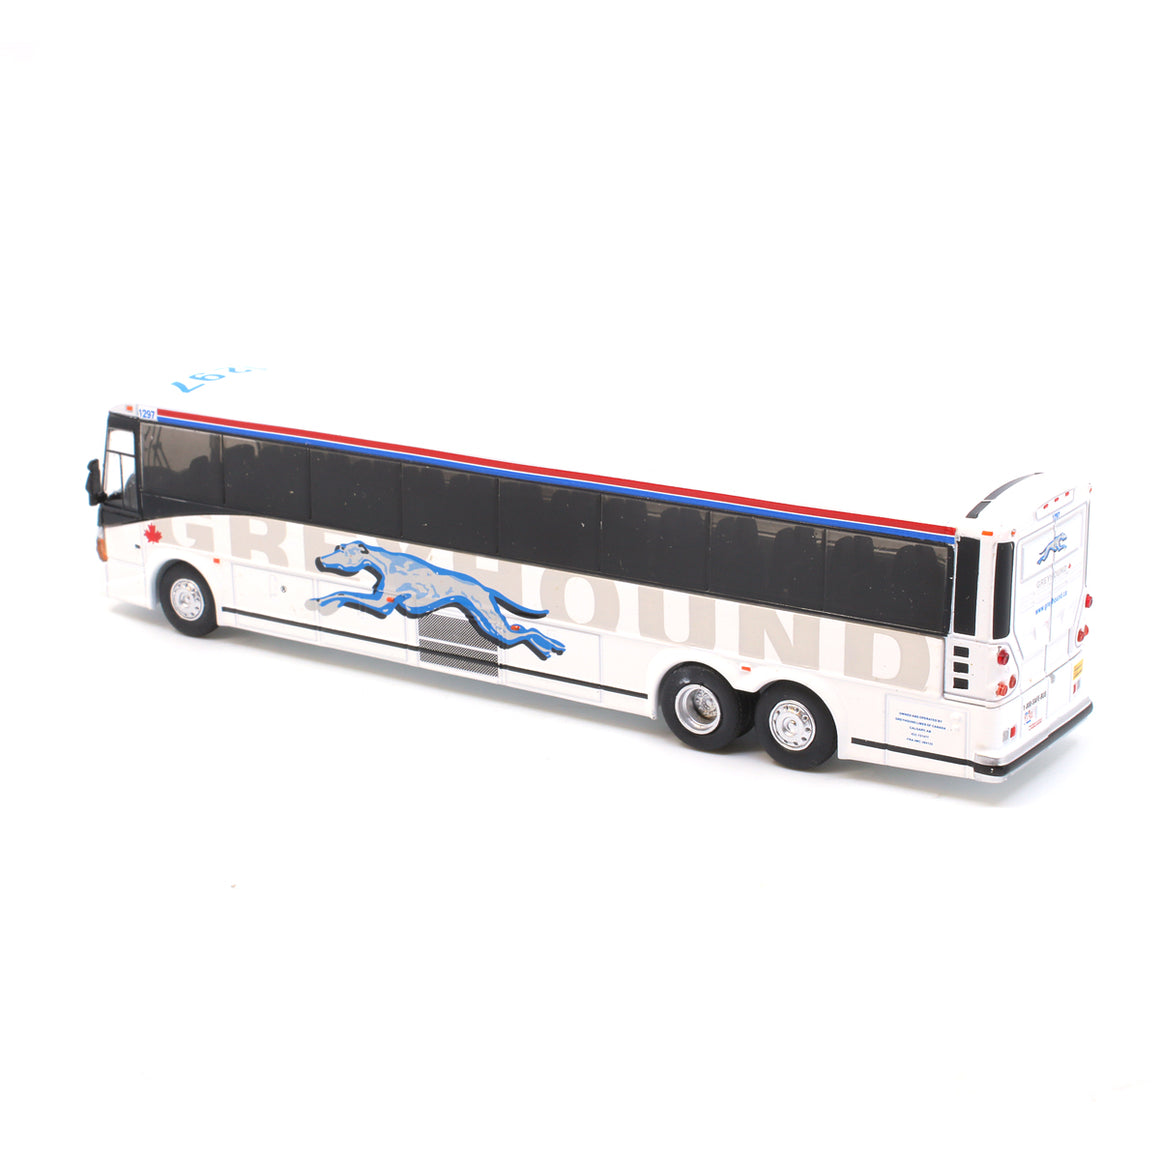 HO Scale: MCI D4505 Bus - Greyhound Canada